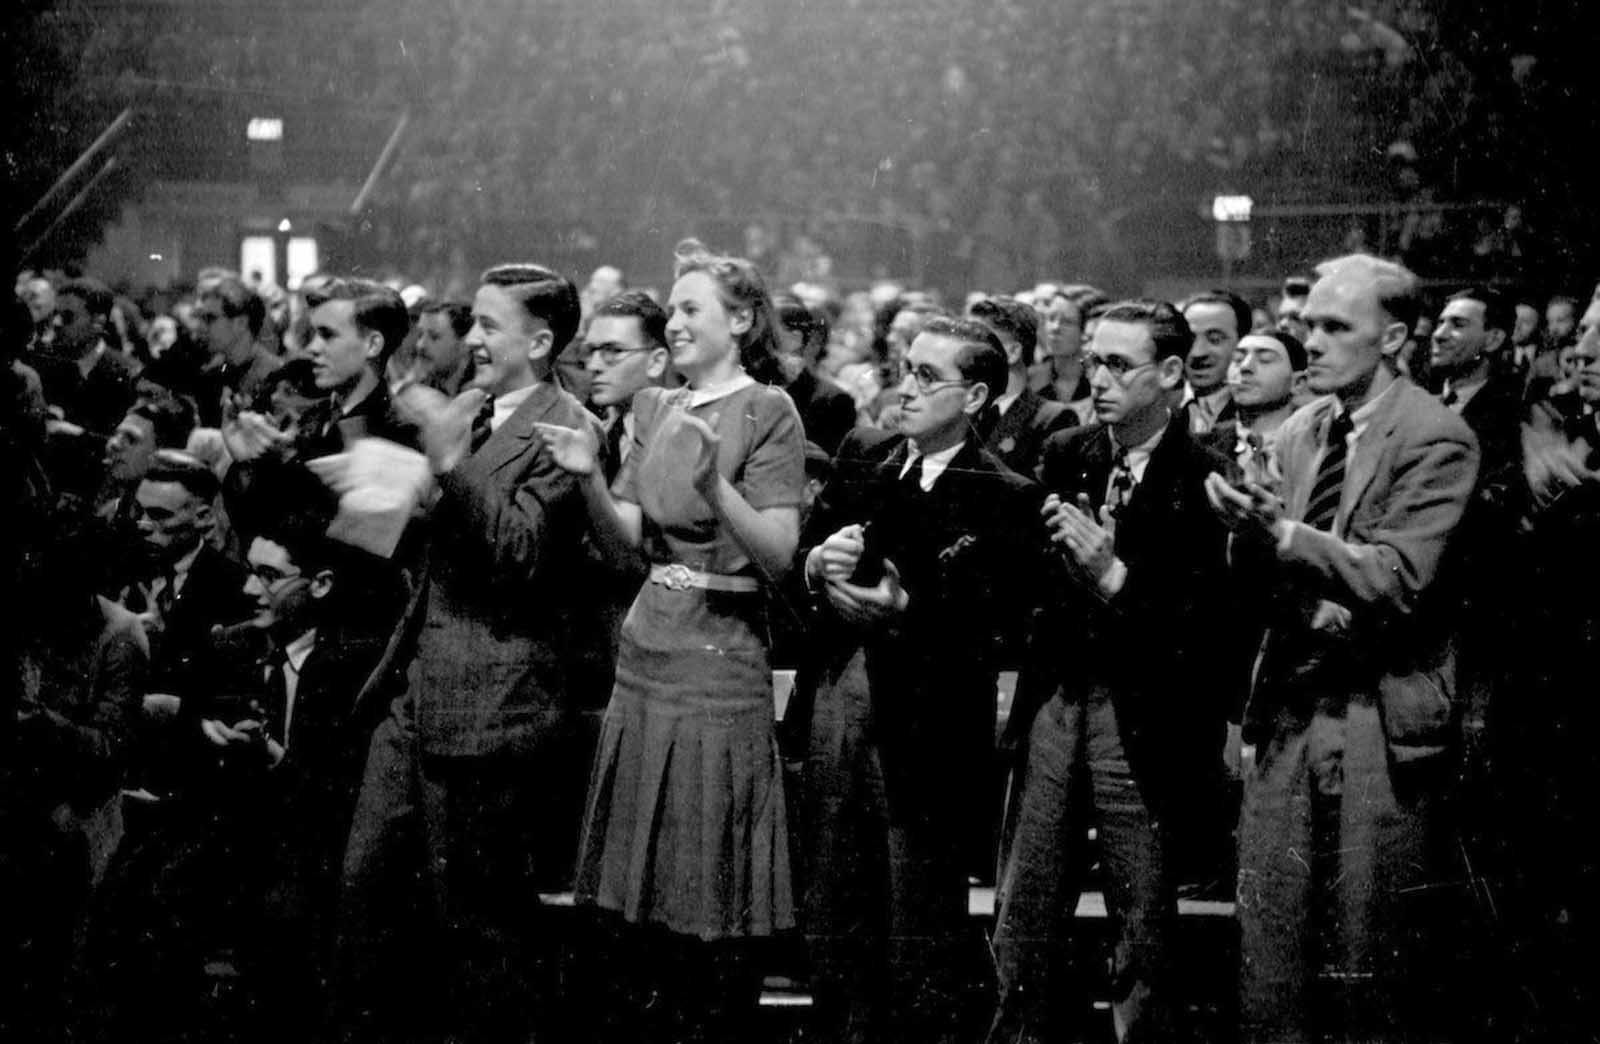 A crowd of over eight thousand people attending a meeting of the British Communist Party at the Empress stadium in Earls Court, London. 1939.